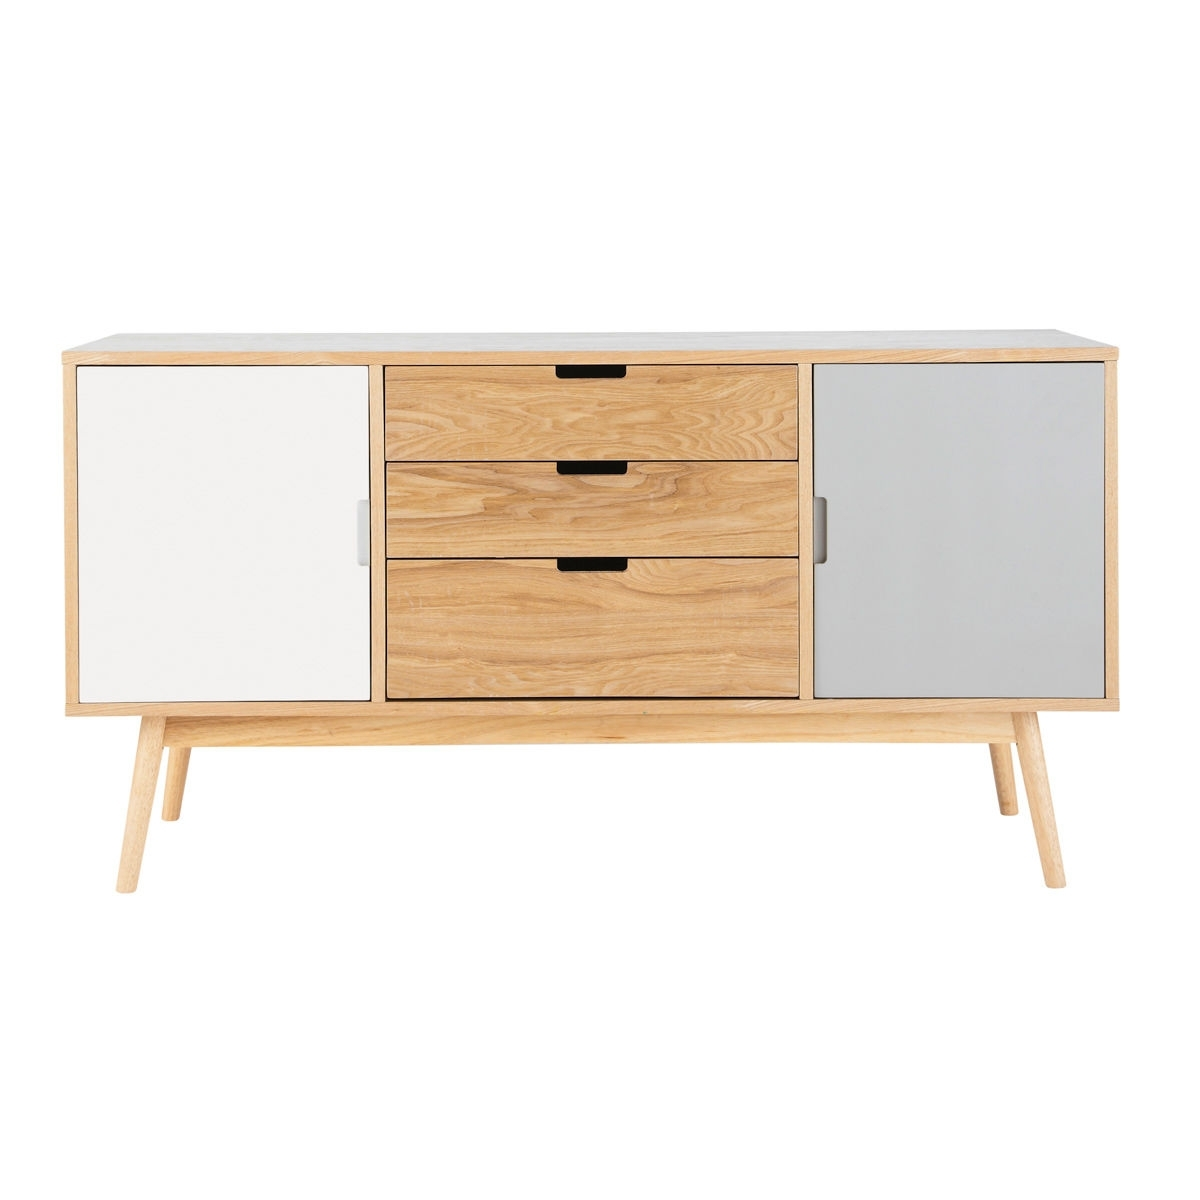 Vintage 2-Door 3-Drawer Sideboard | Maisons Du Monde inside Vintage Finish 4-Door Sideboards (Image 27 of 30)